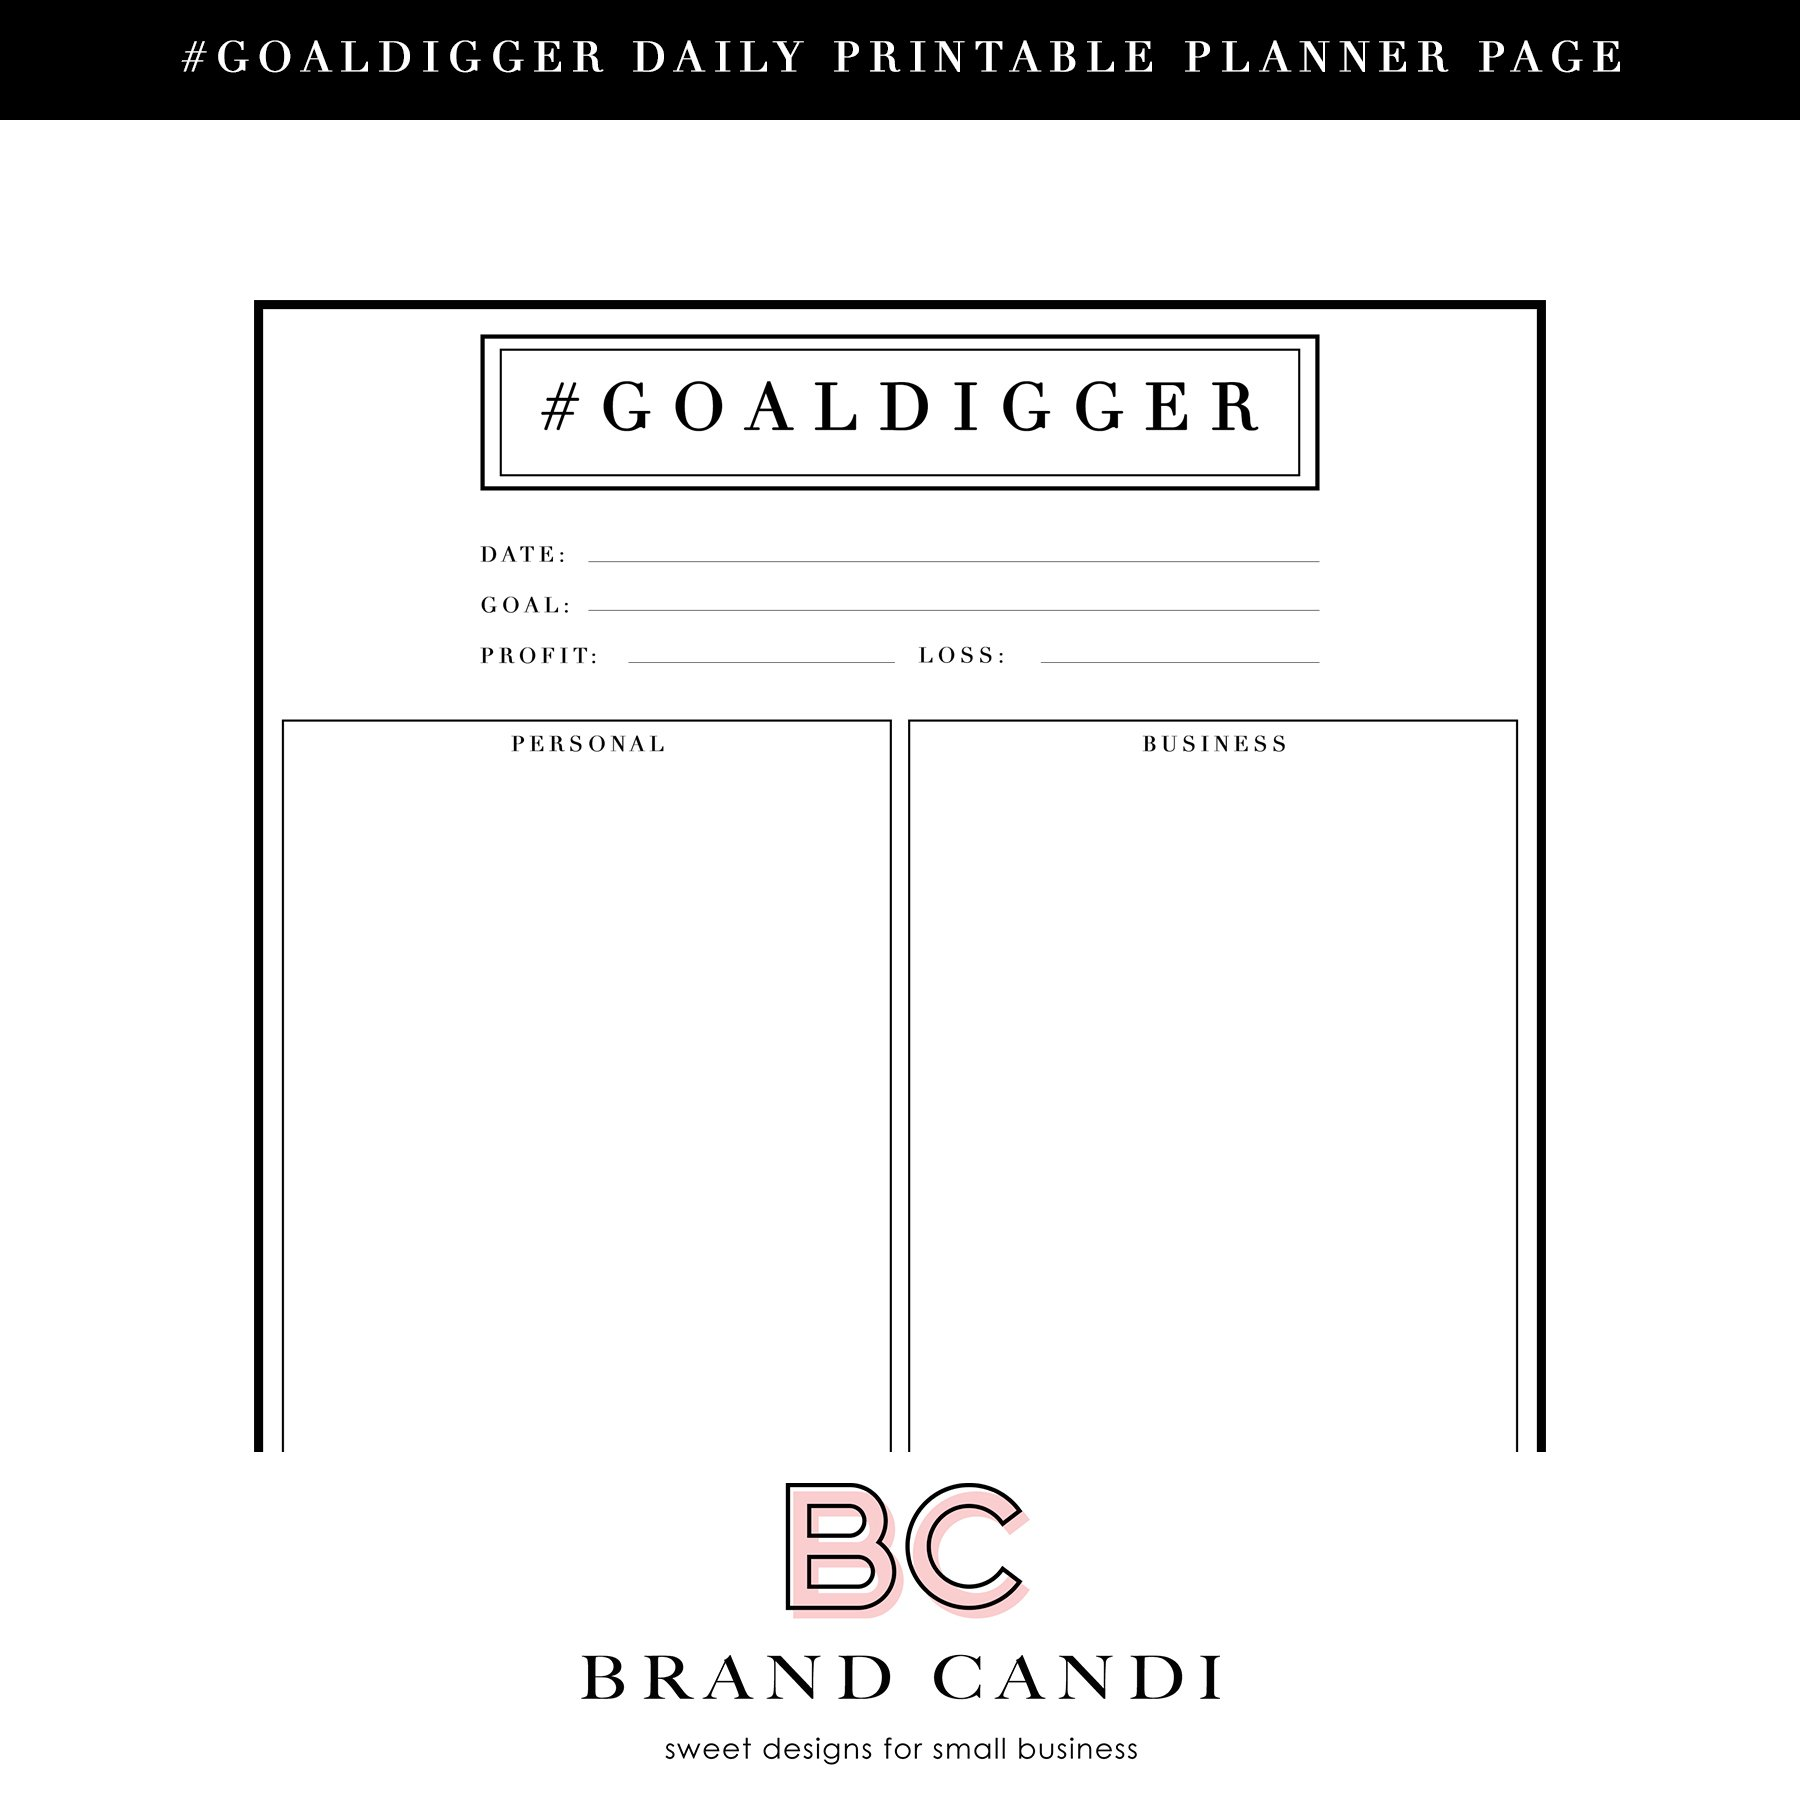 Printable Daily Planner Page ~ Stationery Templates